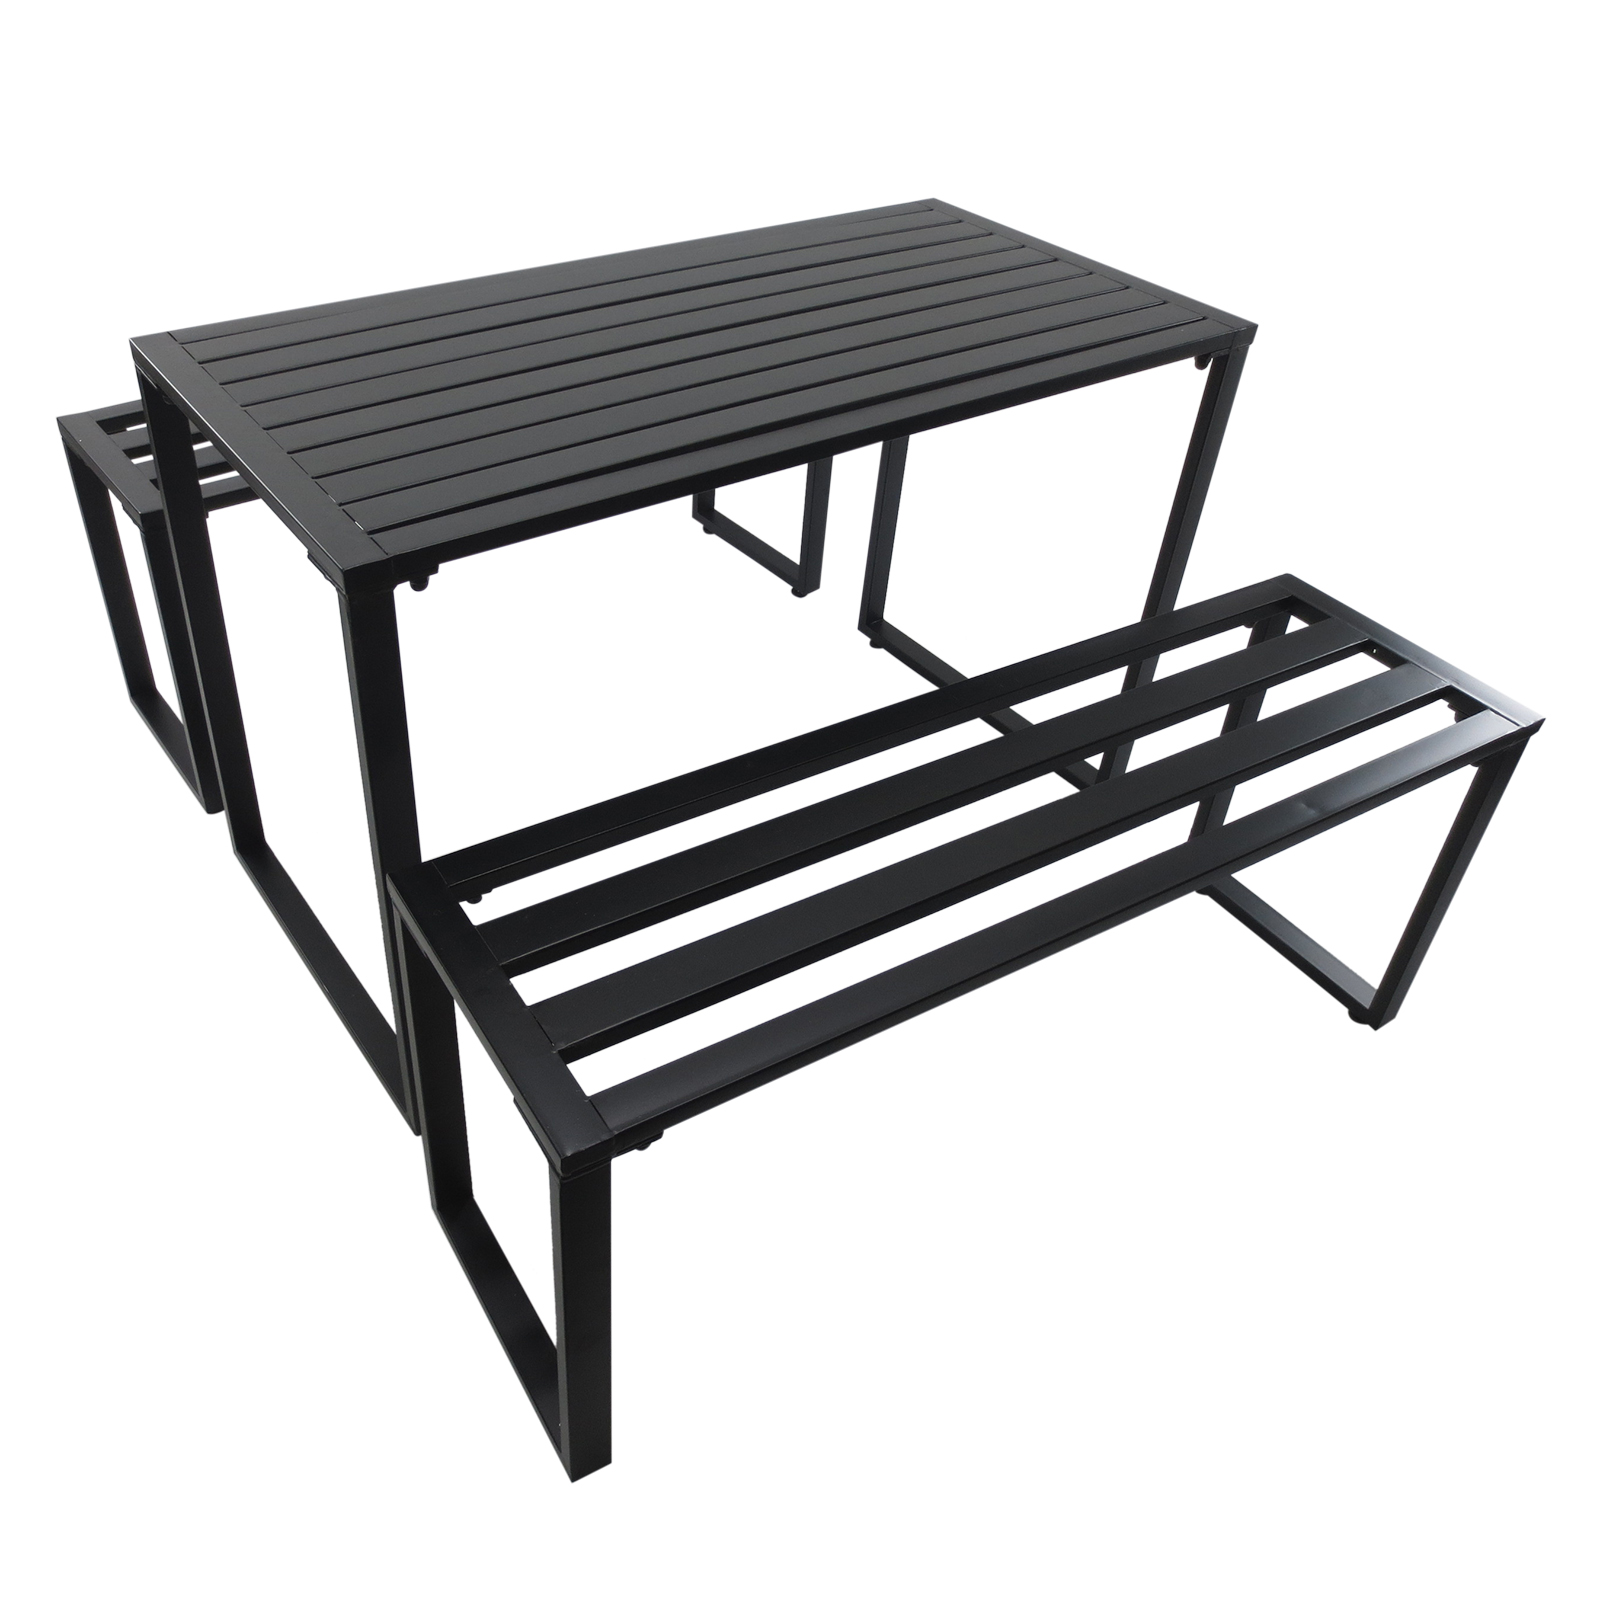 Outsunny Dining Set Picnic 3 Pieces 2 Benches 1 Coffee Table For 4 People Metal Black